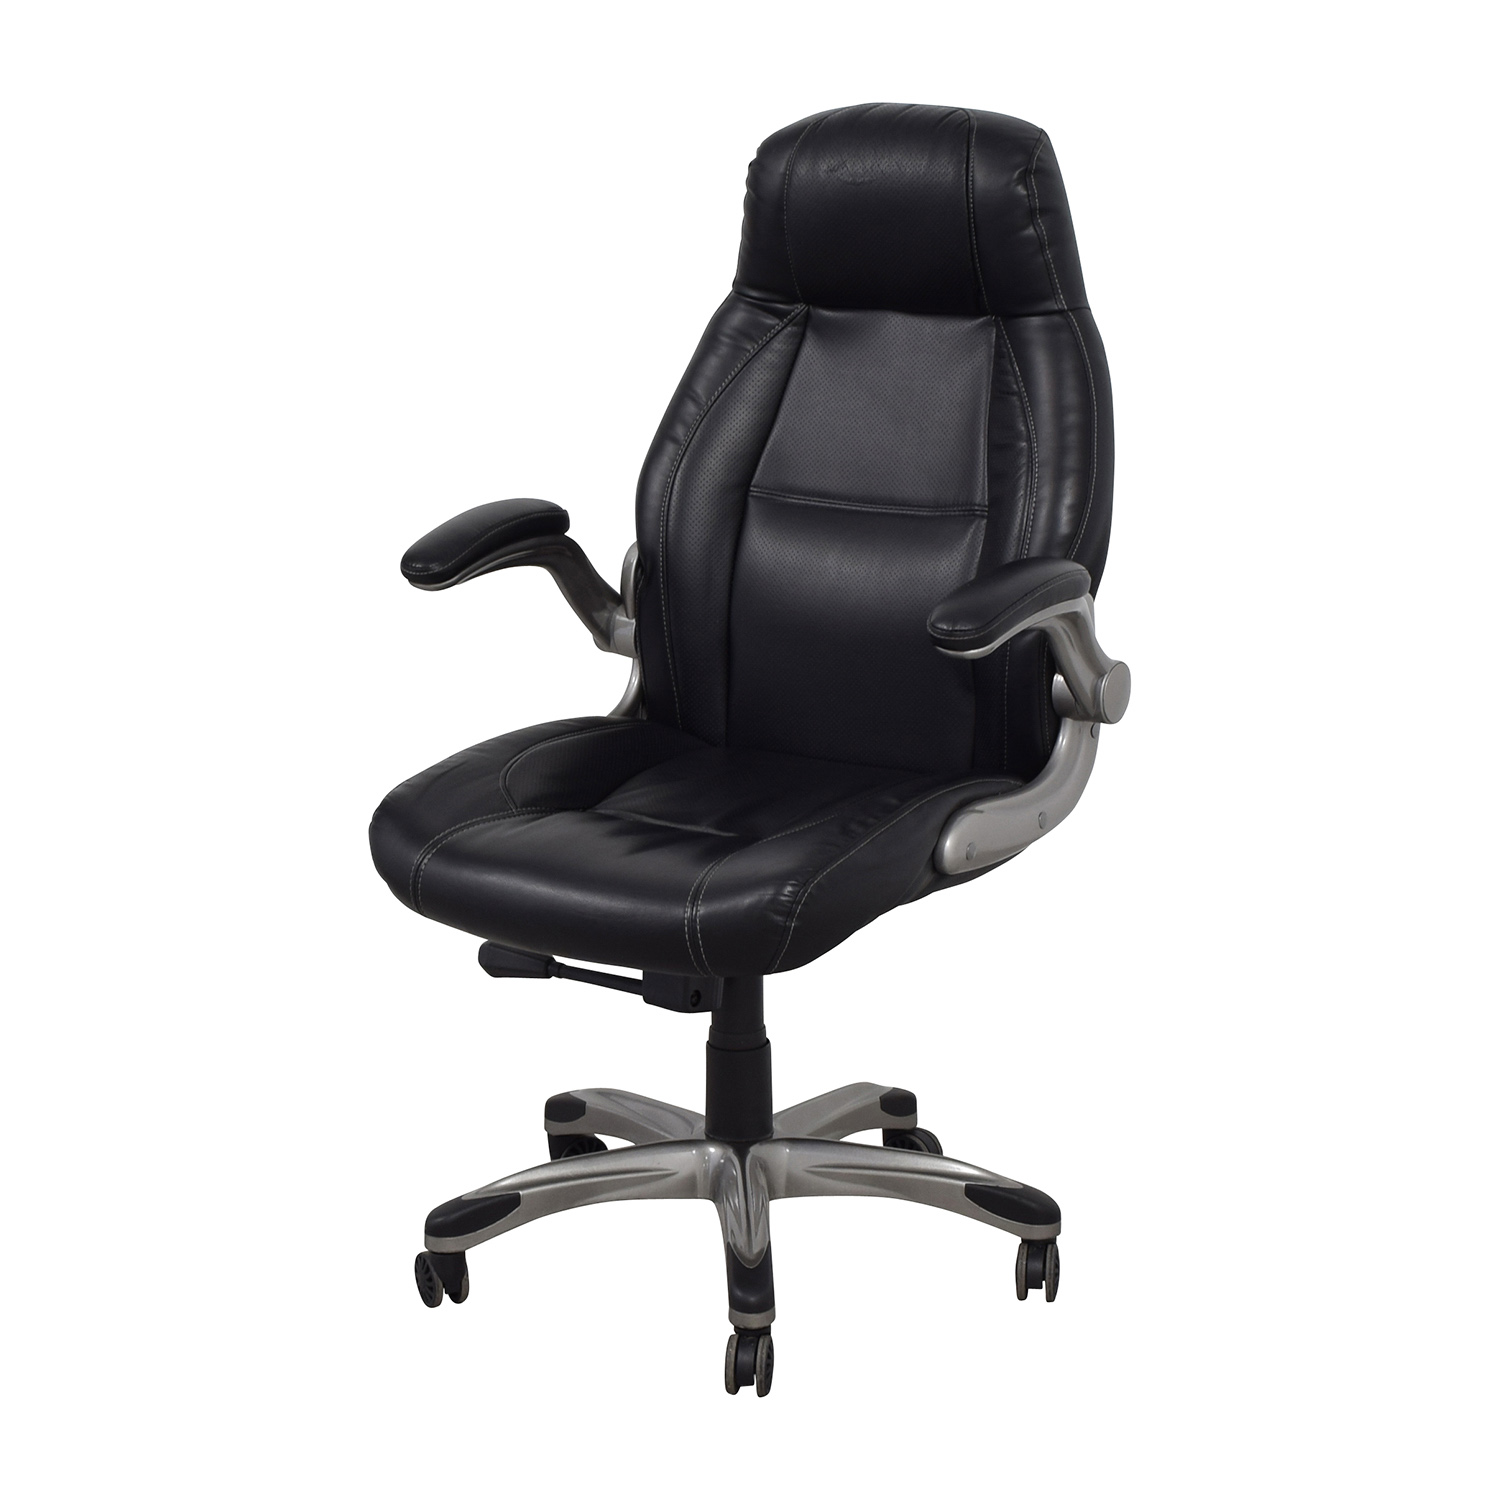 64% OFF Staples Staples Torrent High Back Executive Chair in